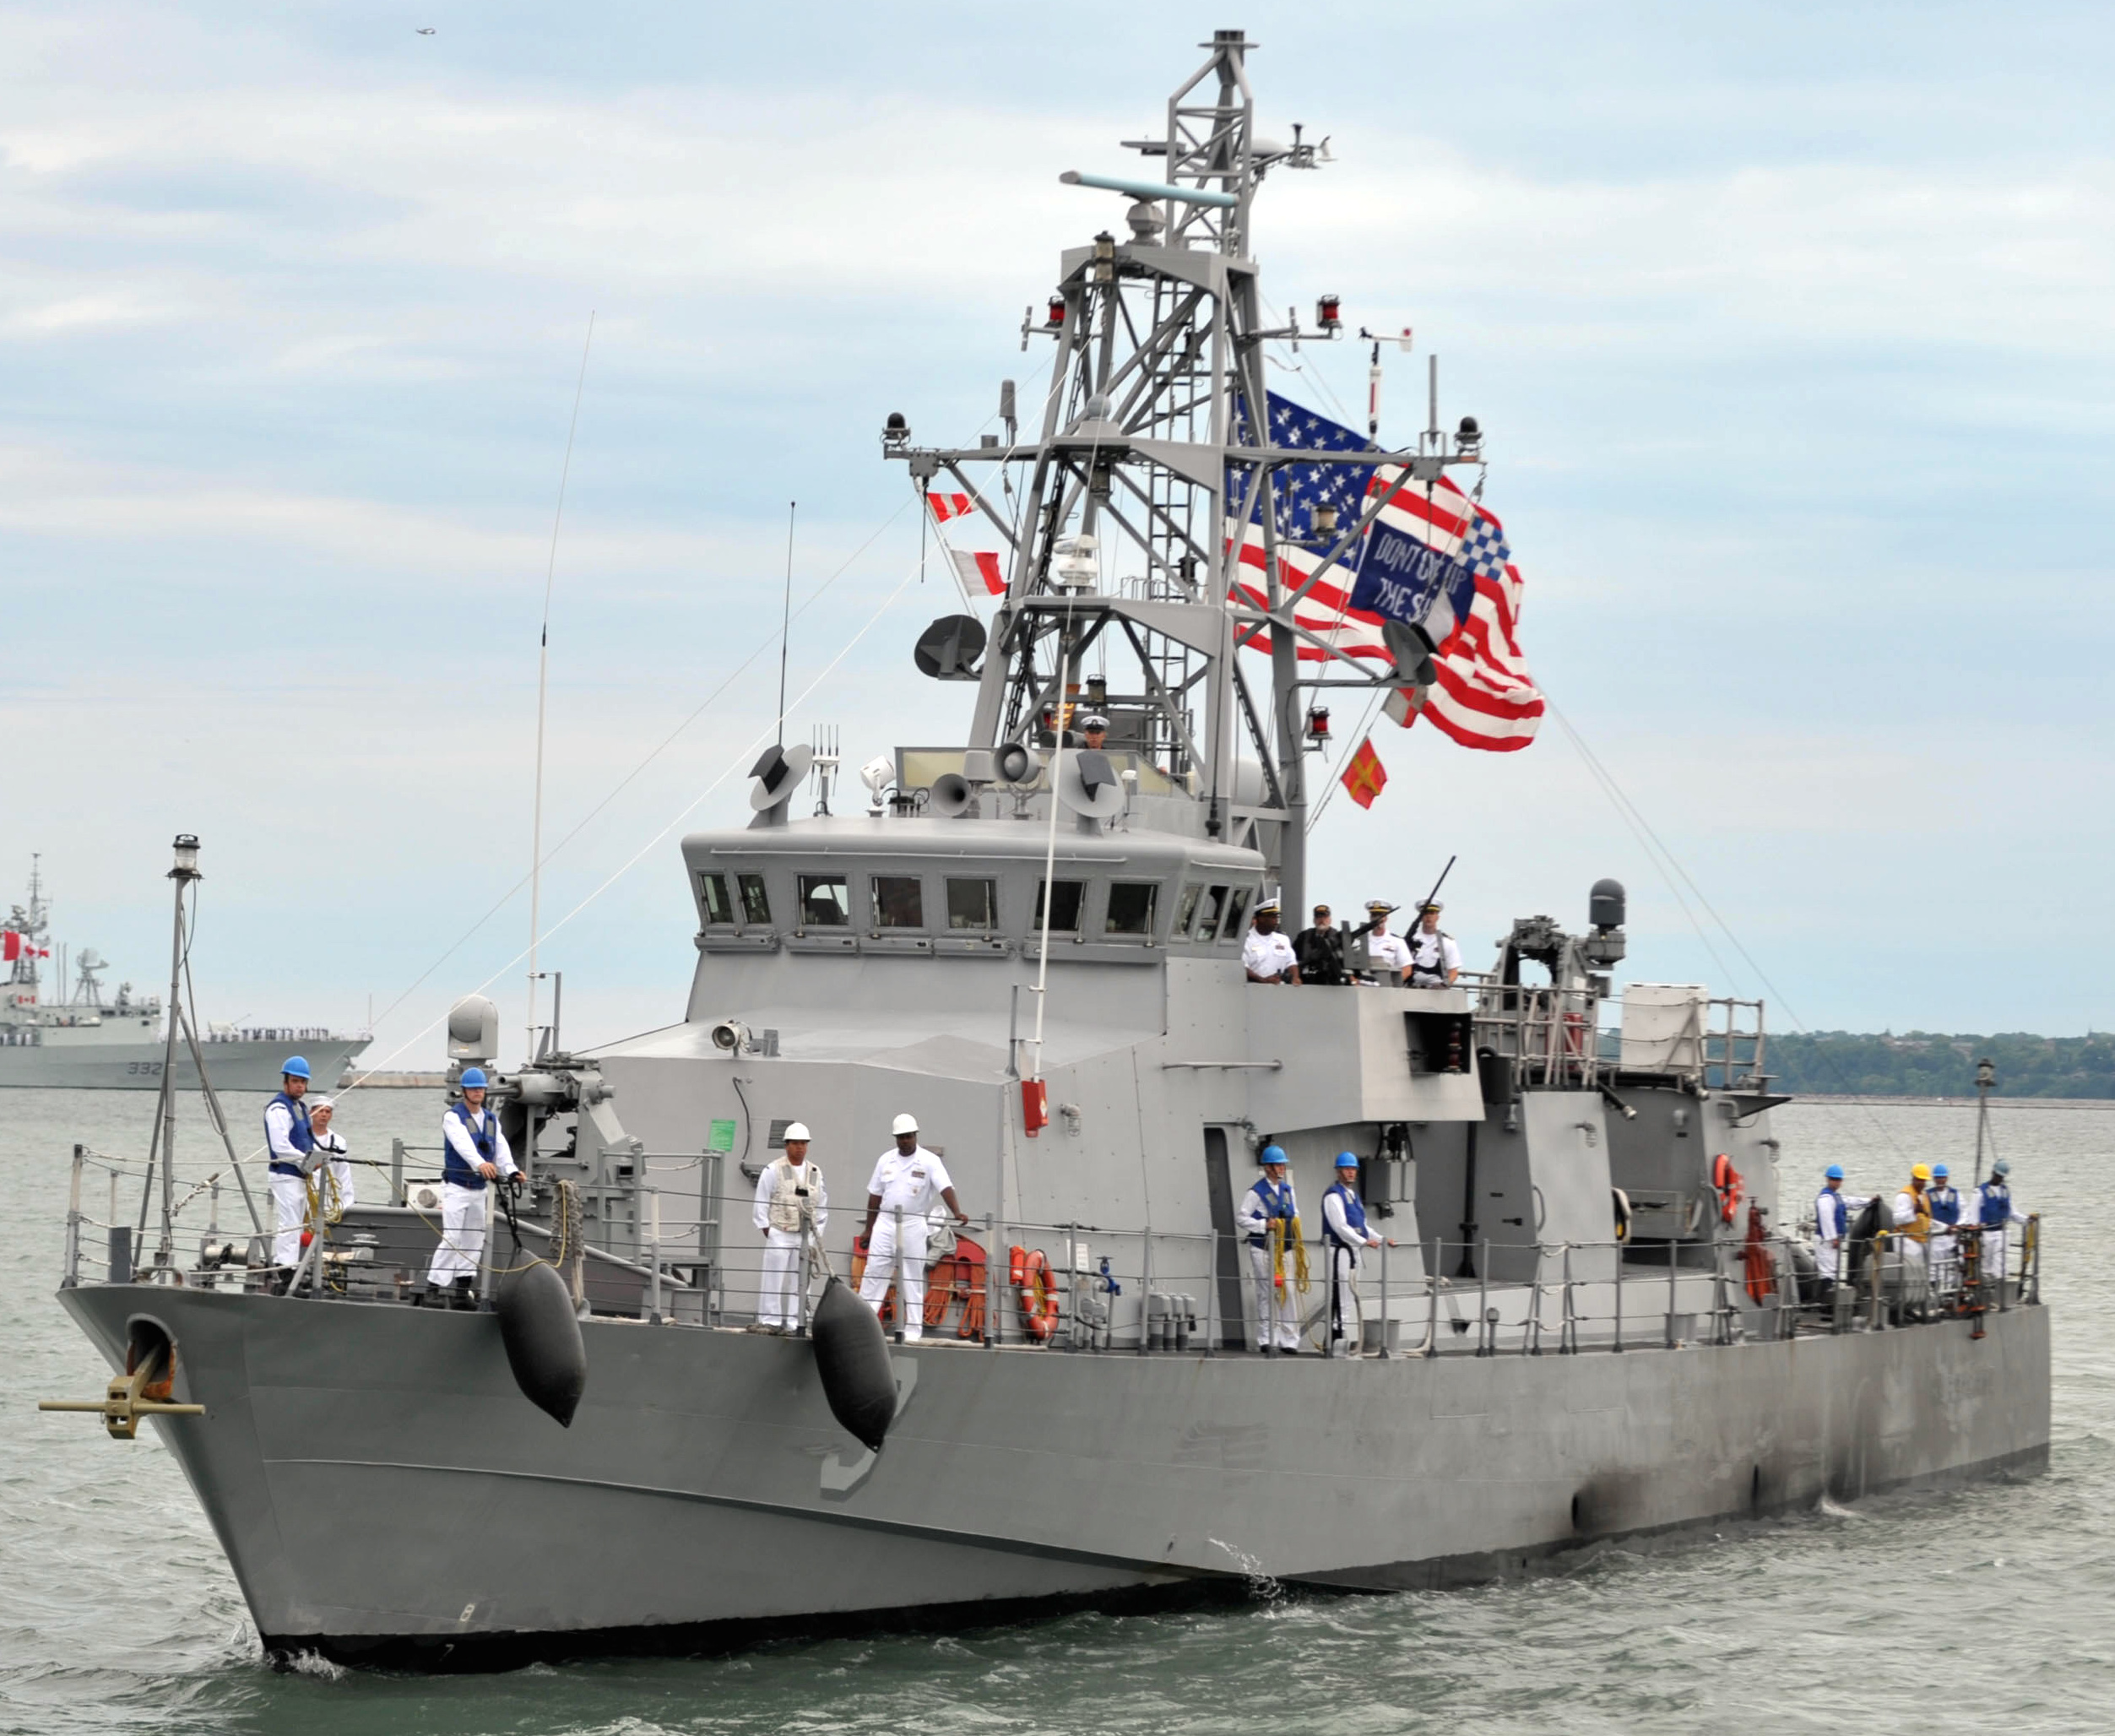 Cyclone-class coastal patrol ship USS Hurricane (PC-3) in 2012. US Navy Photo